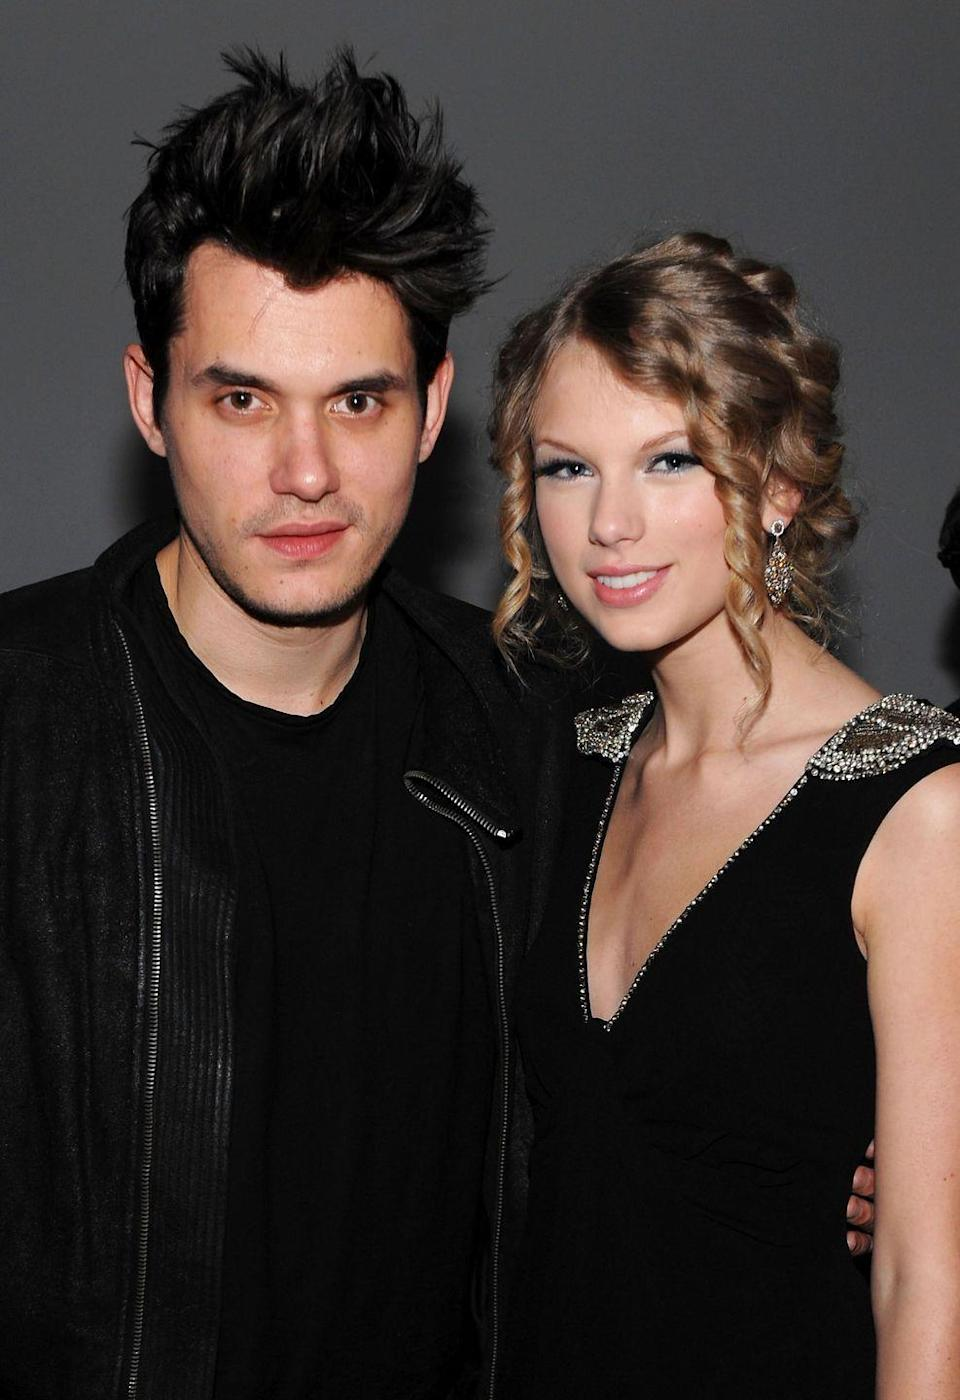 "<p>Years after their relationship, which Taylor detailed in the 2012 song, ""Dear John,"" John received some unwanted attention for tweeting on Dec. 13, 2016. If you've been a lifelong Swiftie, you know that is the holiest day of the year, as it's Taylor's birthday. So when John called it the ""lamest day of the year"" in 2016, all hell broke loose. <a href=""https://www.usmagazine.com/celebrity-news/news/john-mayer-denies-shade-after-calling-december-13-the-lamest-day-w455925/"" rel=""nofollow noopener"" target=""_blank"" data-ylk=""slk:Approximately 10 minutes later"" class=""link rapid-noclick-resp"">Approximately 10 minutes later</a>, he took the tweet down and cleared the air: ""NOPE. No. Nuh-uh. People I am 39. I am deleting those tweets. Come right at me for doing so. Absolutely no shade."" OK there, John.</p>"